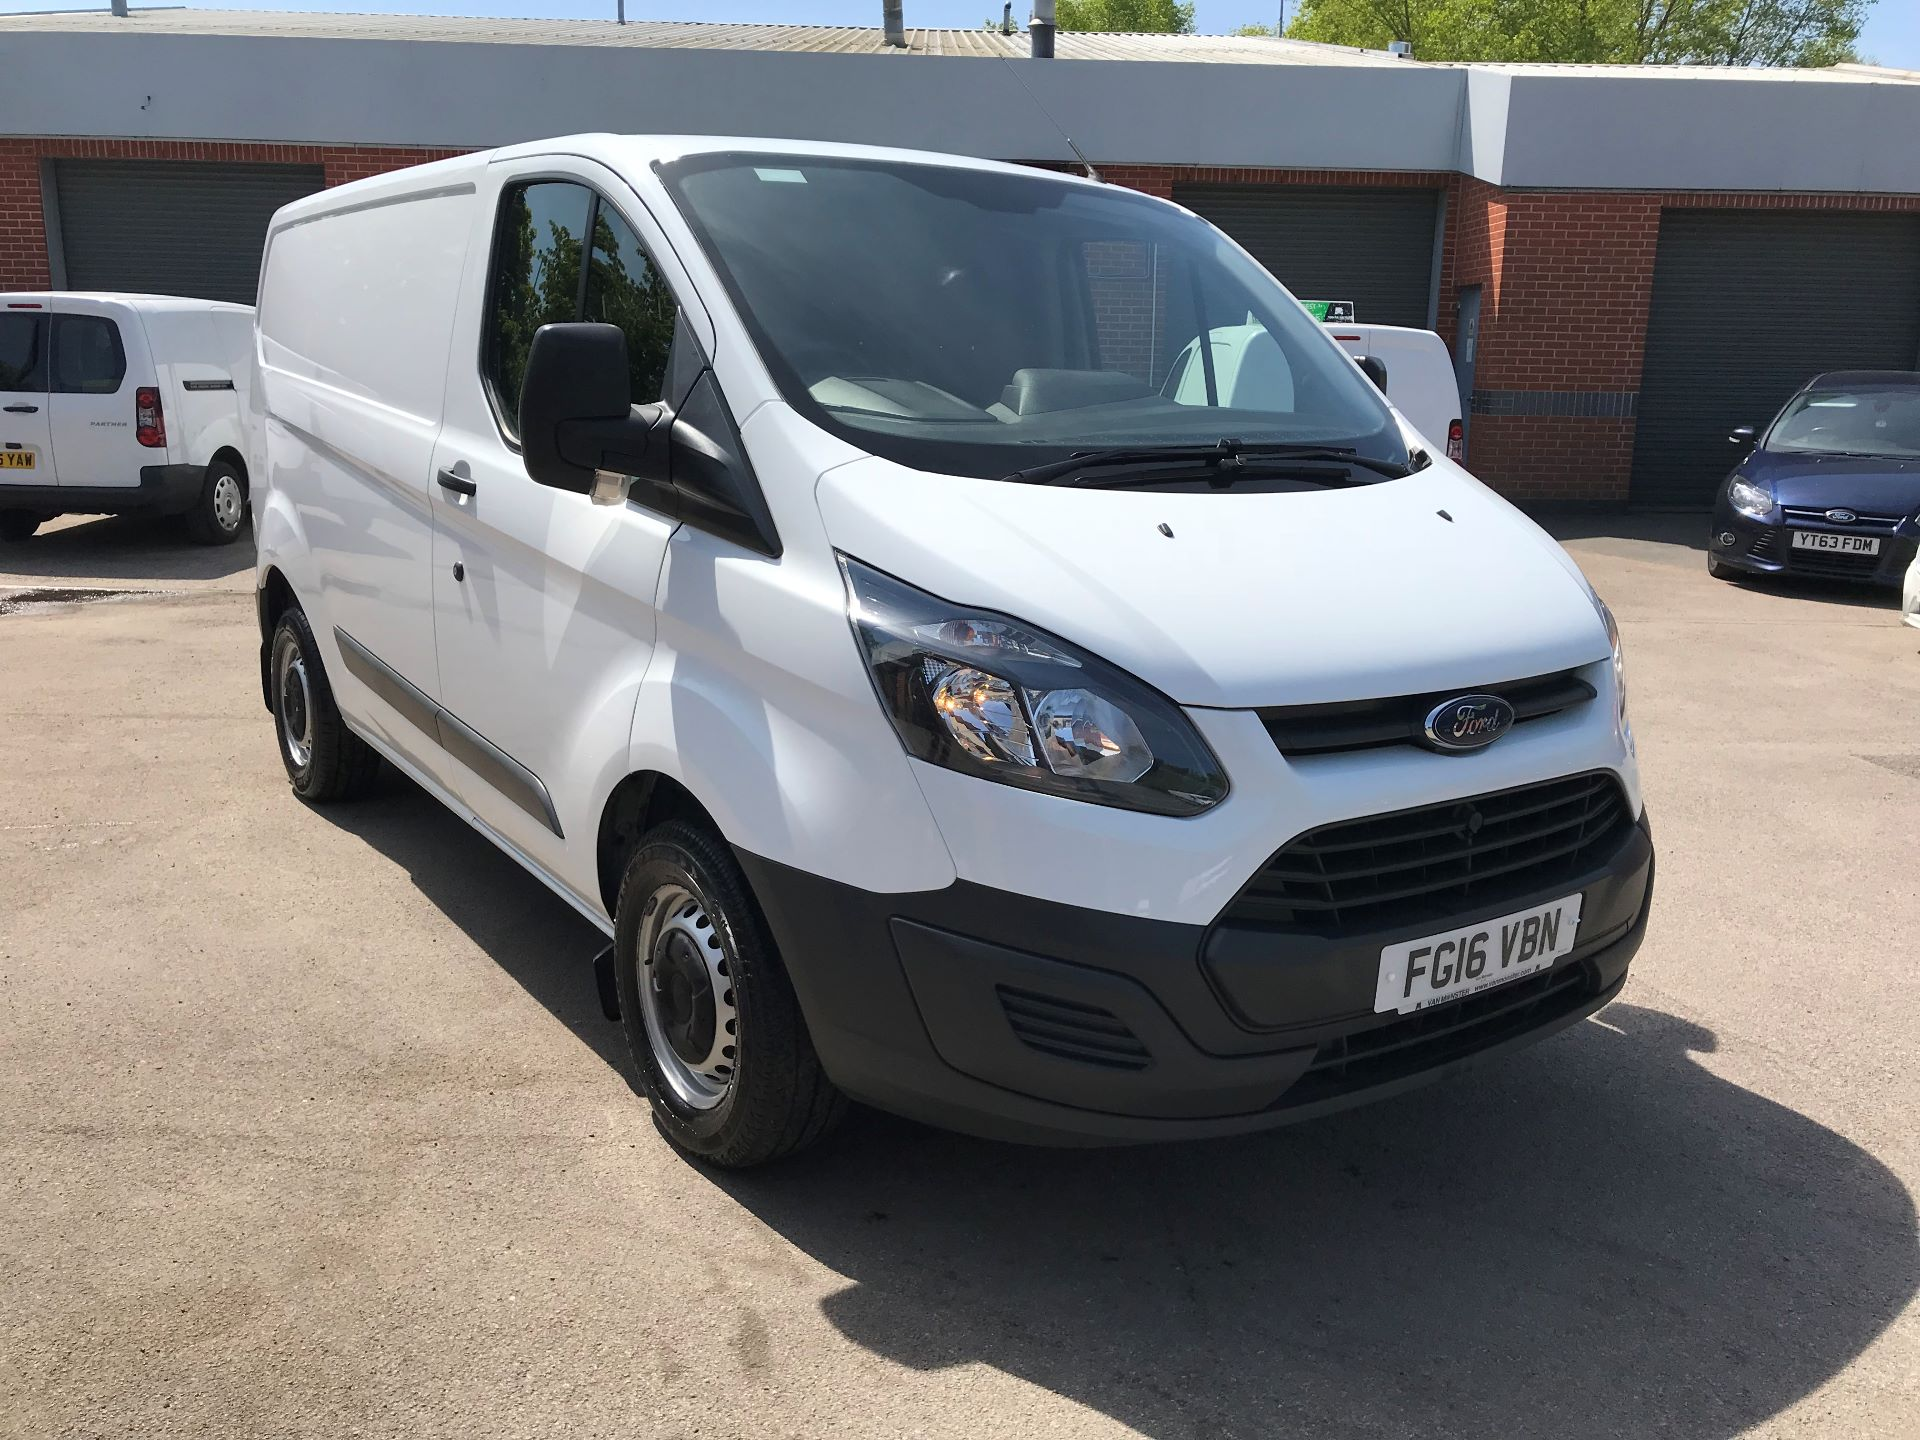 2016 Ford Transit Custom 290 L1 DIESEL FWD 2.2  TDCI 100PS LOW ROOF VAN EURO 5 (FG16VBN)